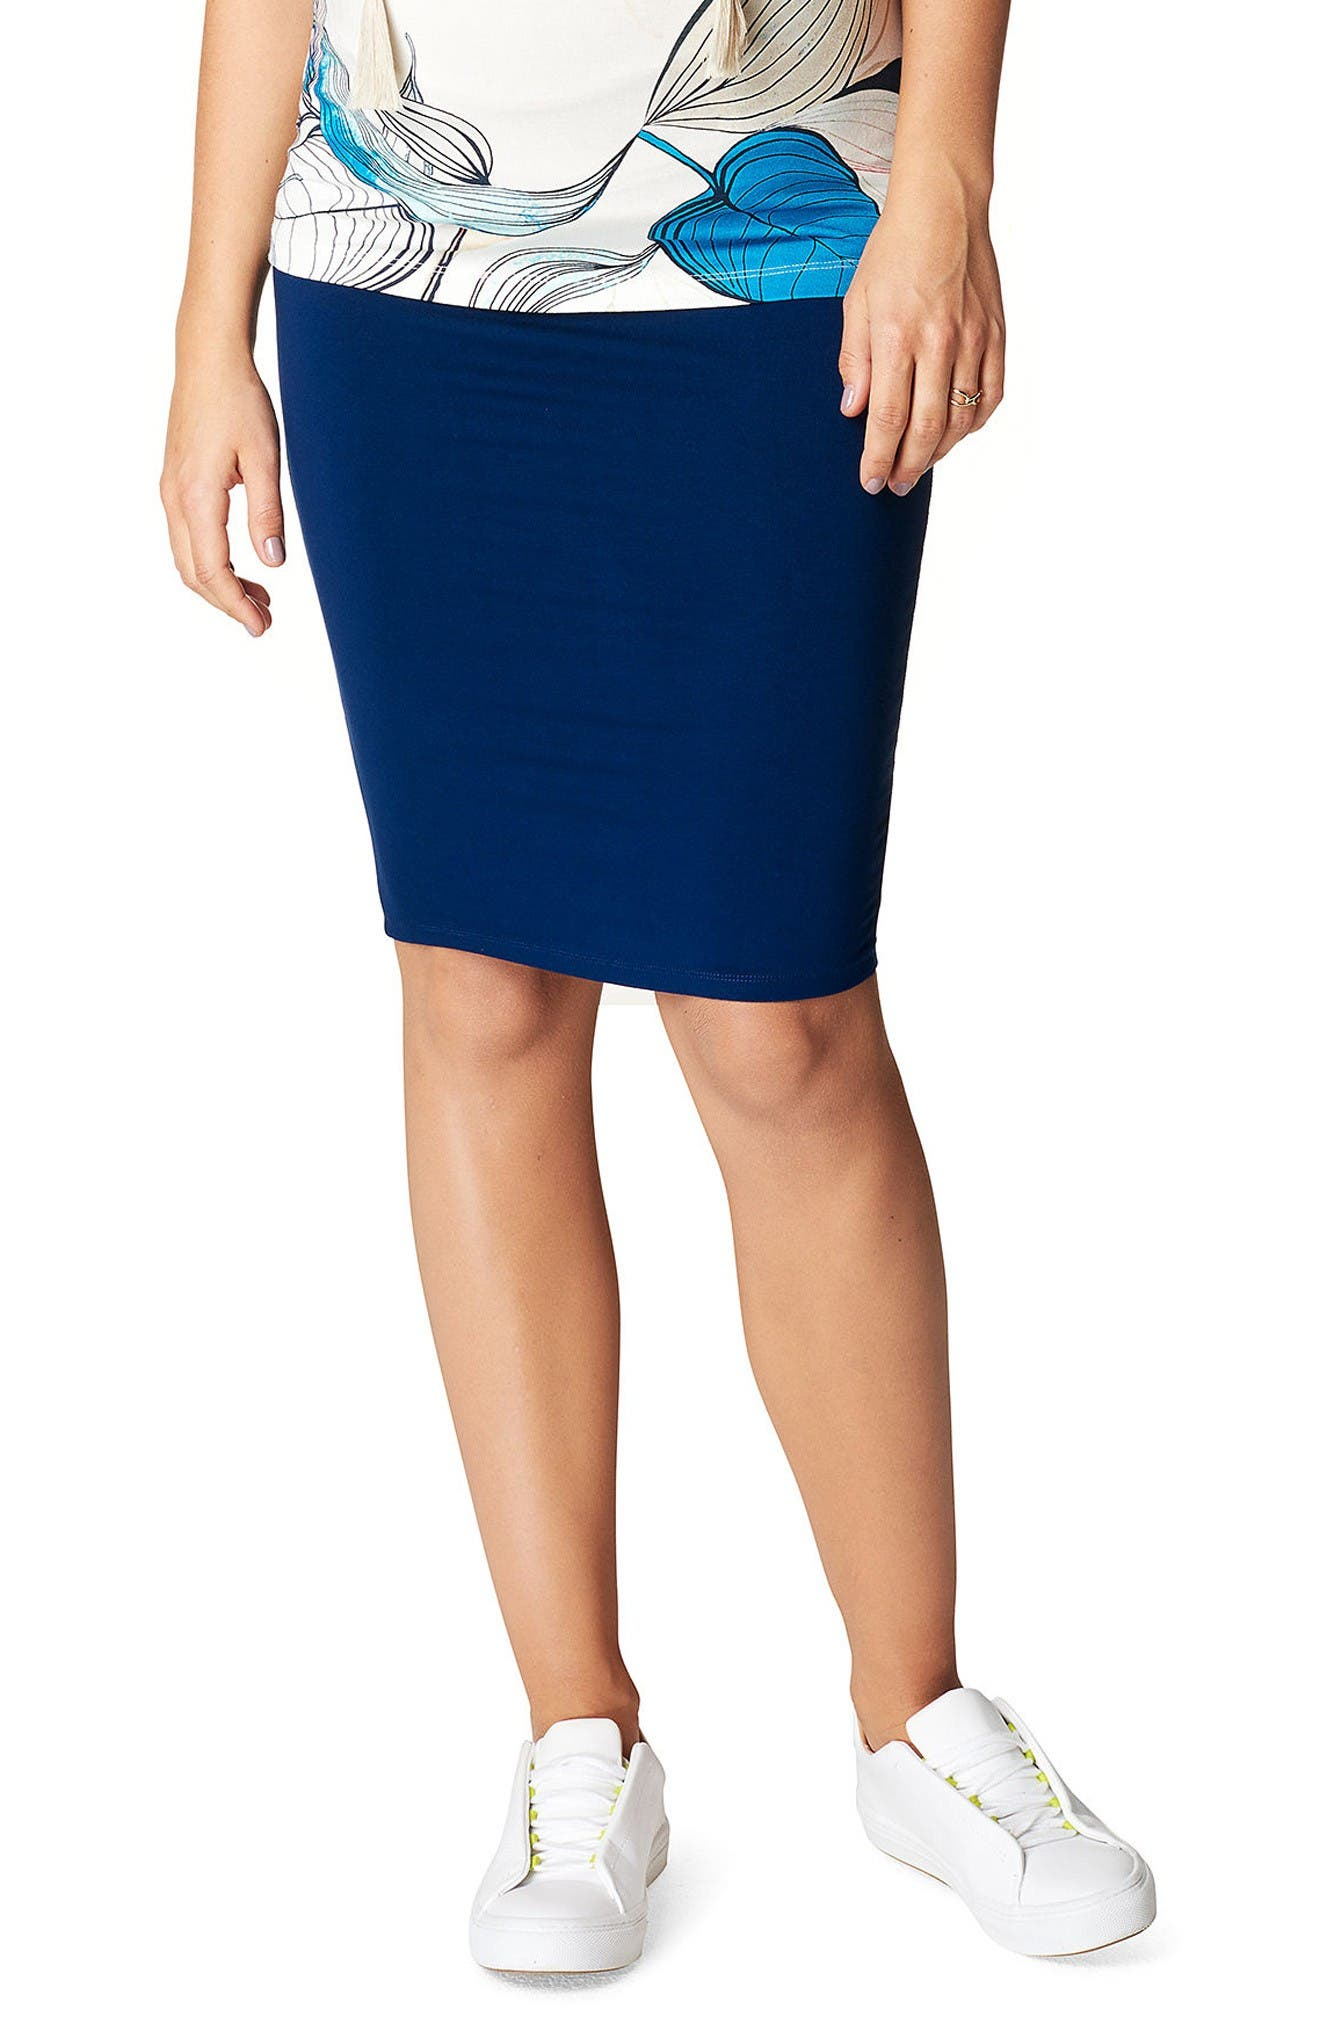 Alternate Image 1 Selected - Noppies Vida Maternity Skirt